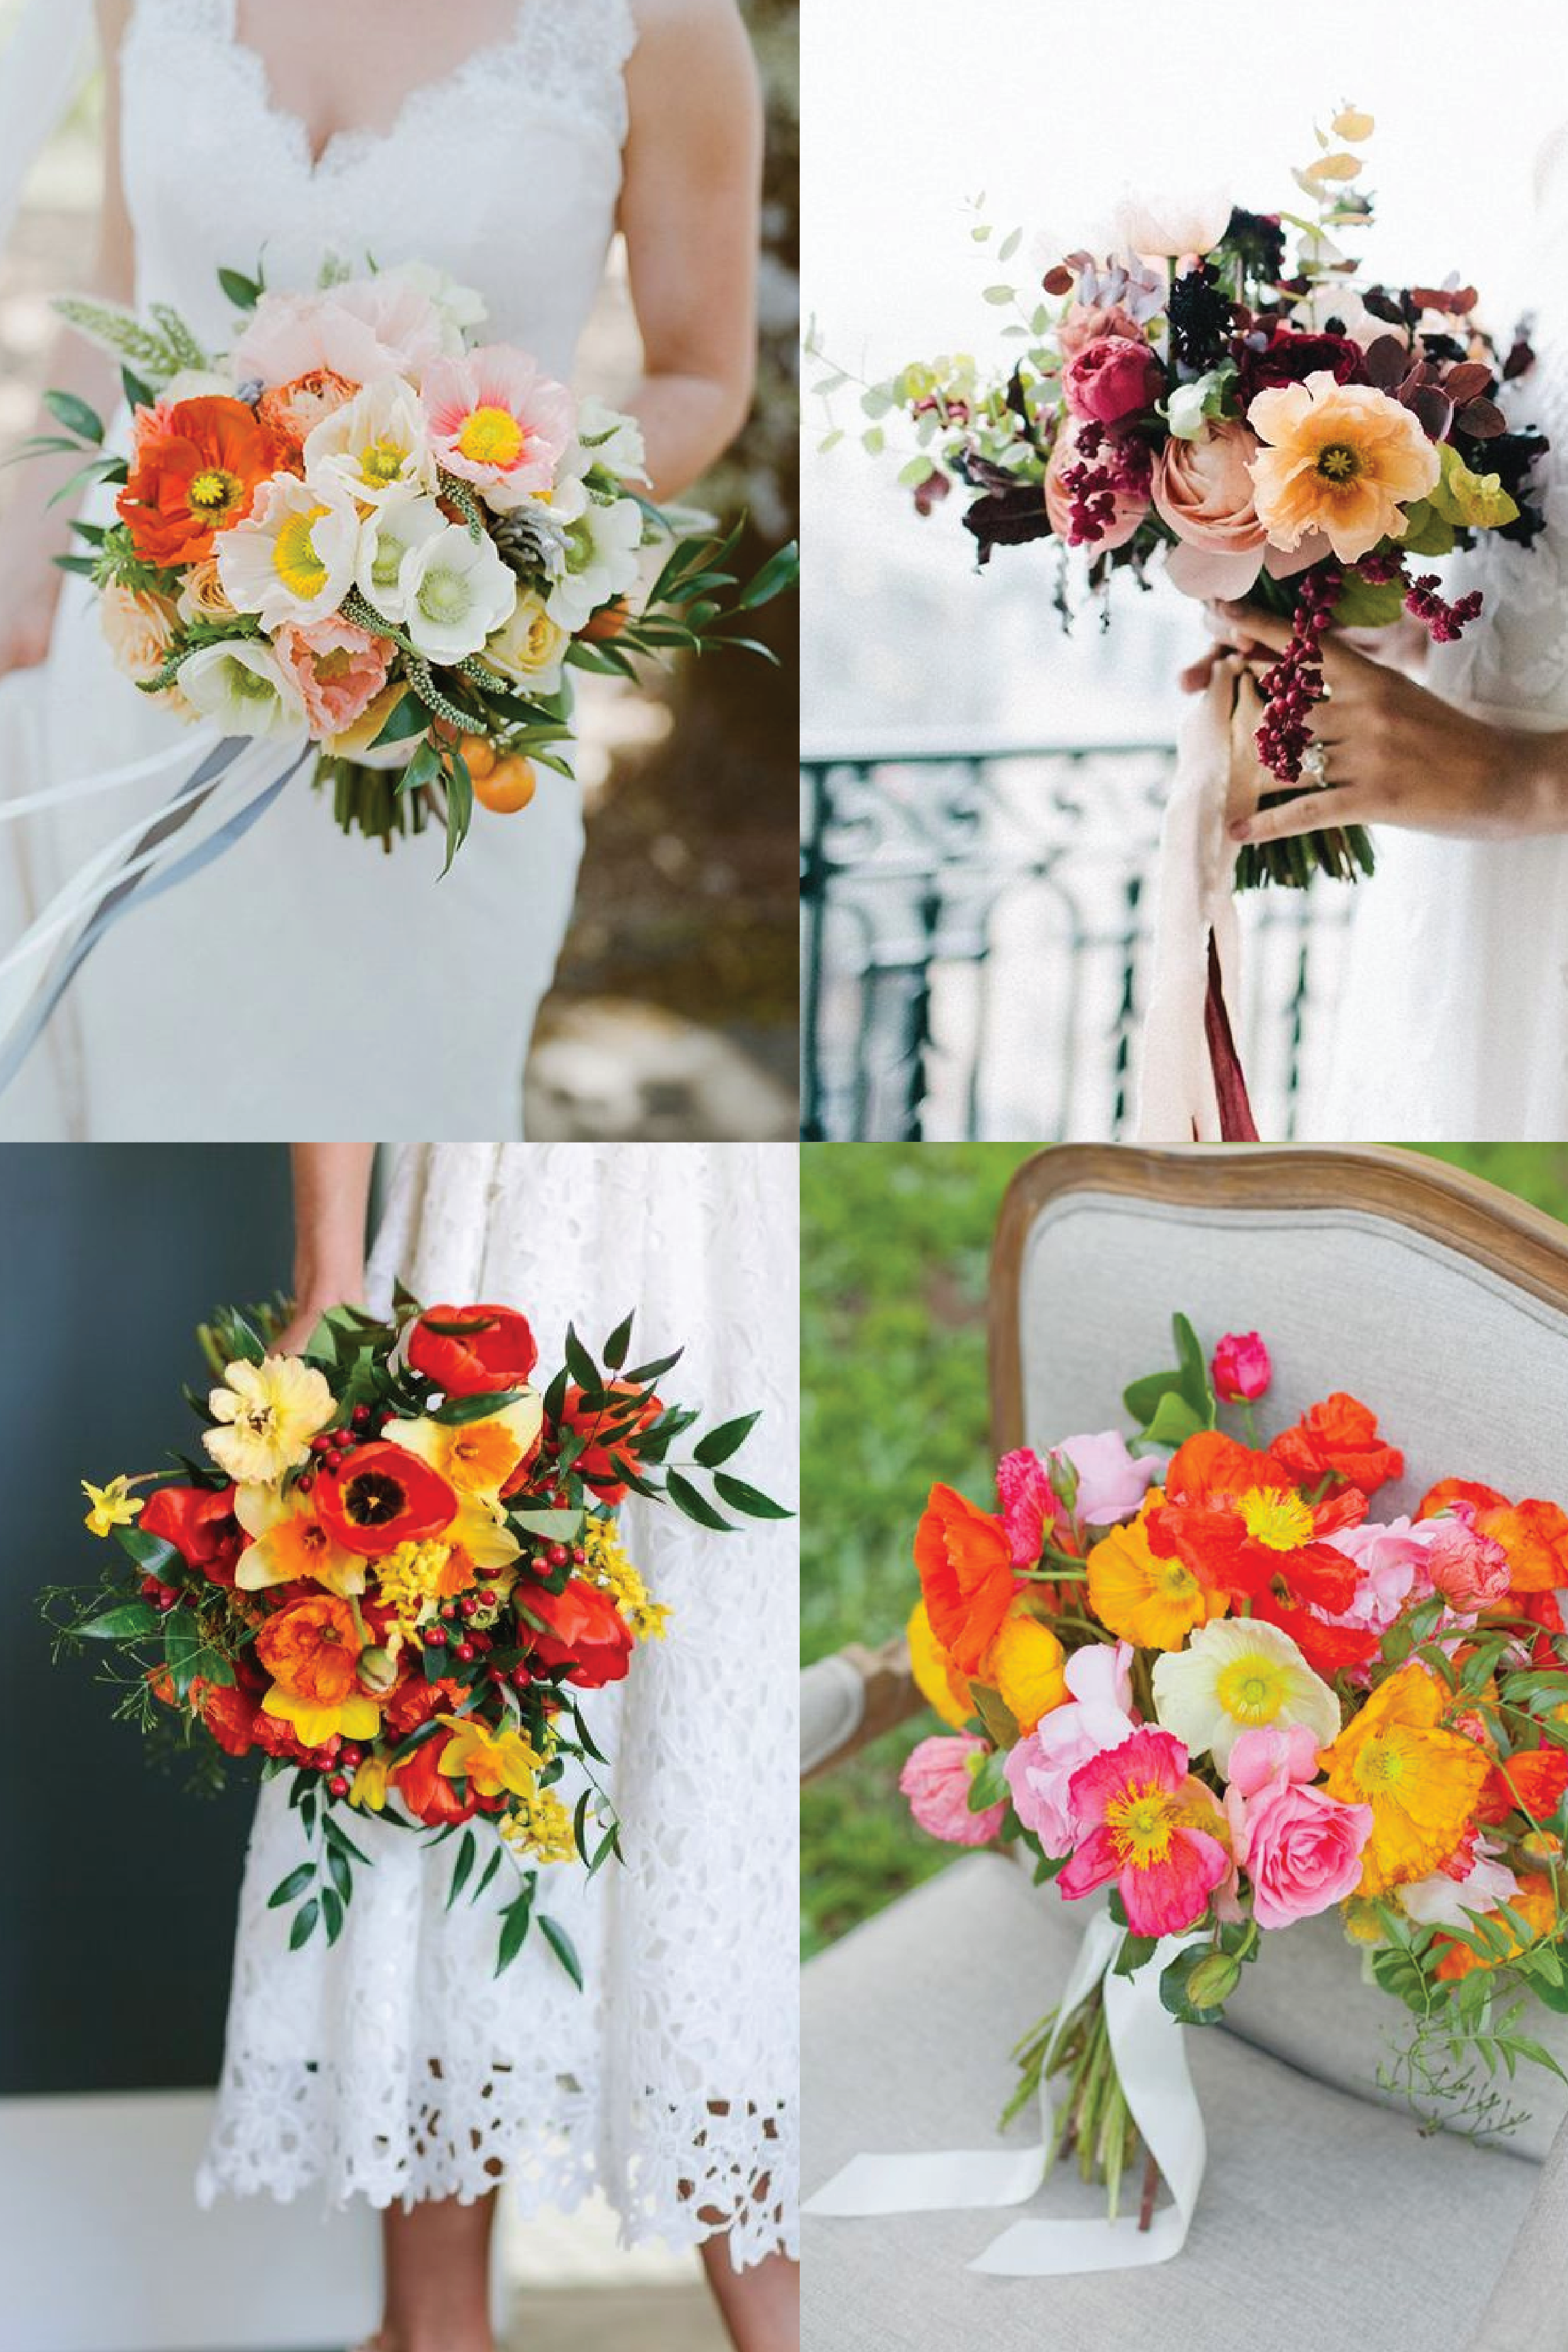 From clockwise, from top left:  flowers by  Alicia K Designs and photo by  Christina McNeill ; flowers by  Lily Paloma and photo by  Shannen Natasha ; flowers by  Calie Rose  and photo by  Mere Photo ;flowers by  Flower Talk  and photo by  Angela Higgin .